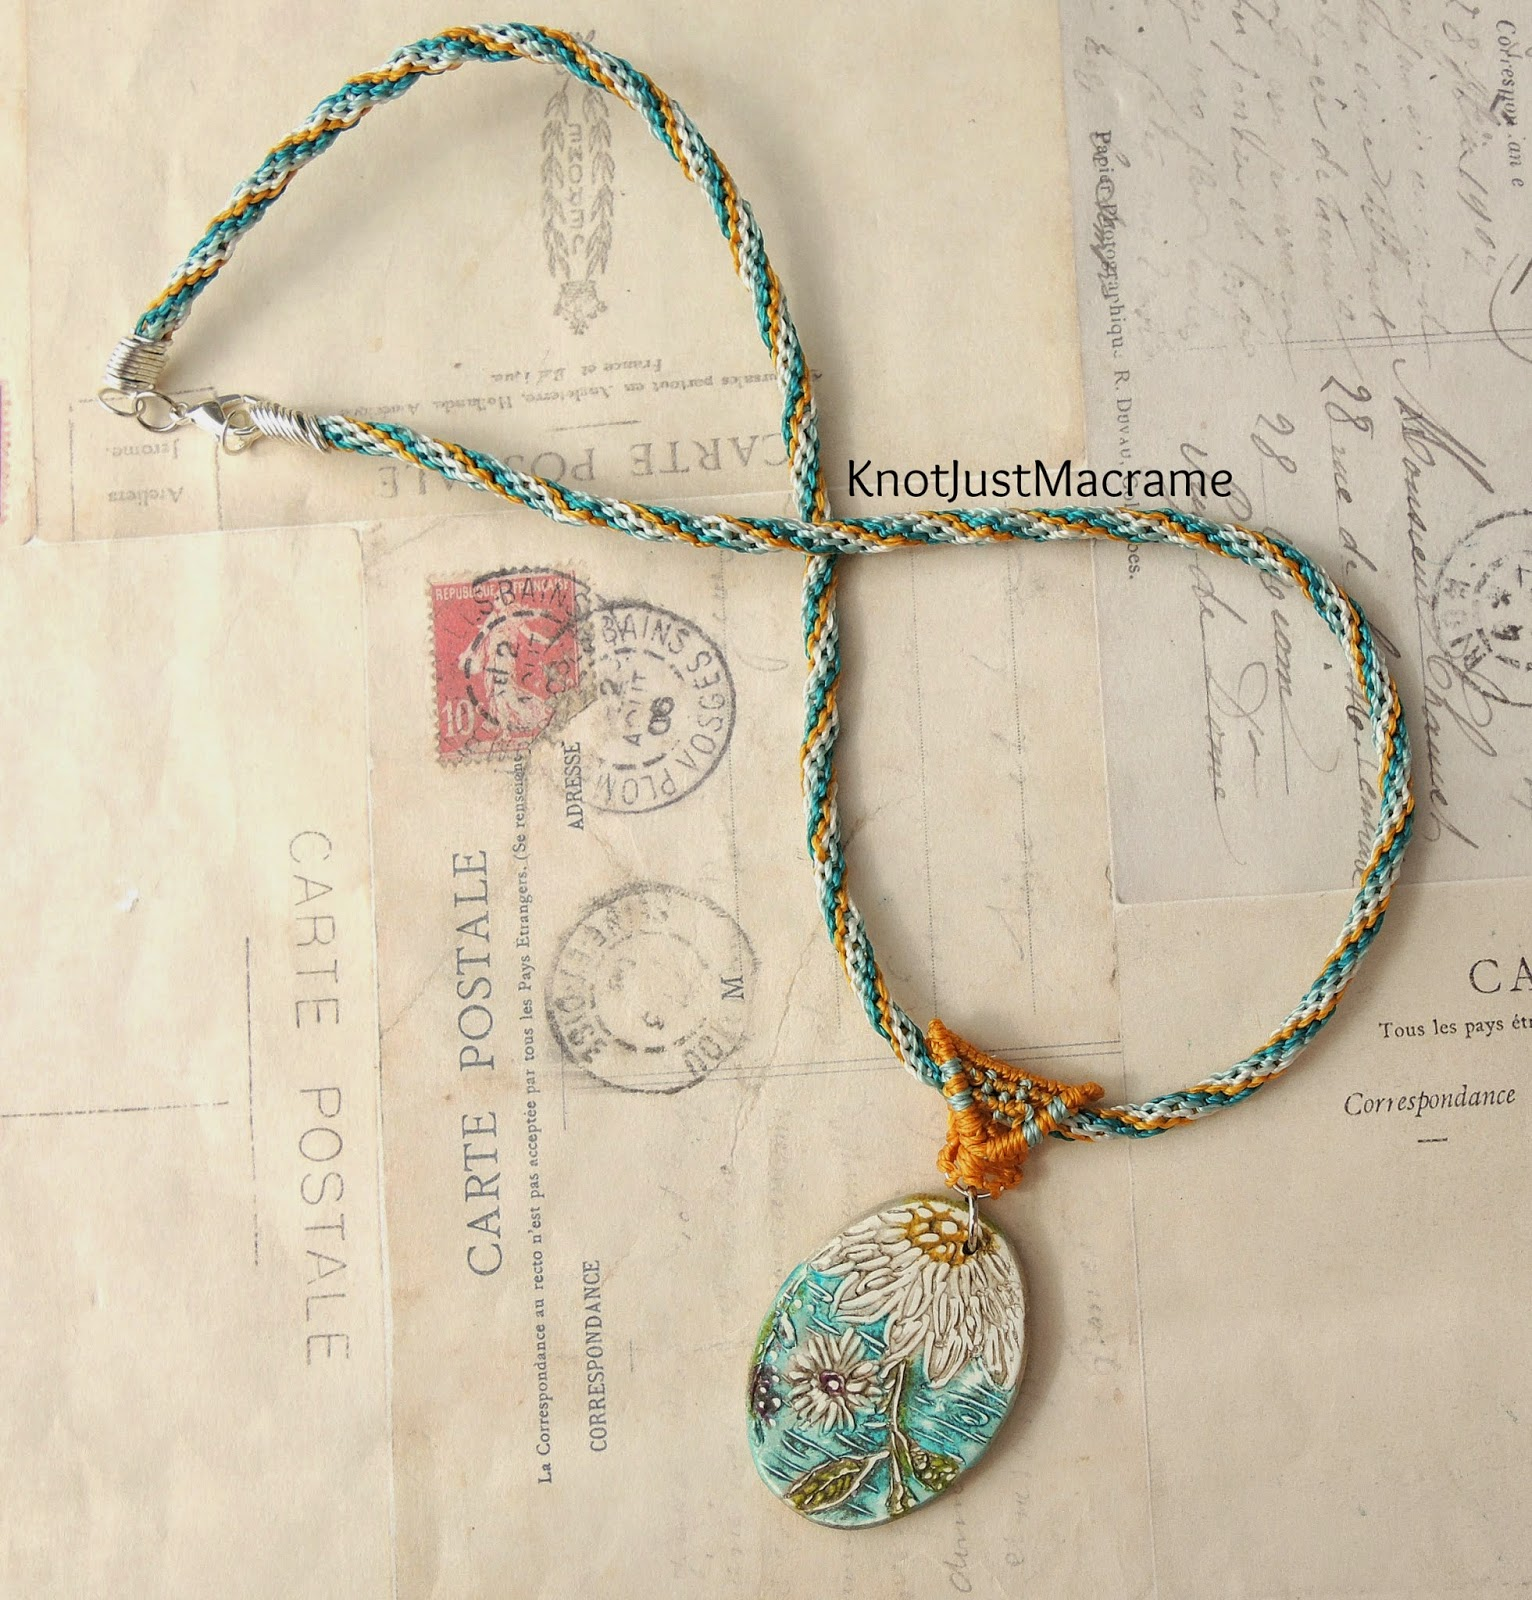 Knotted micro macrame necklace with daisy pendant in teal and mustard.